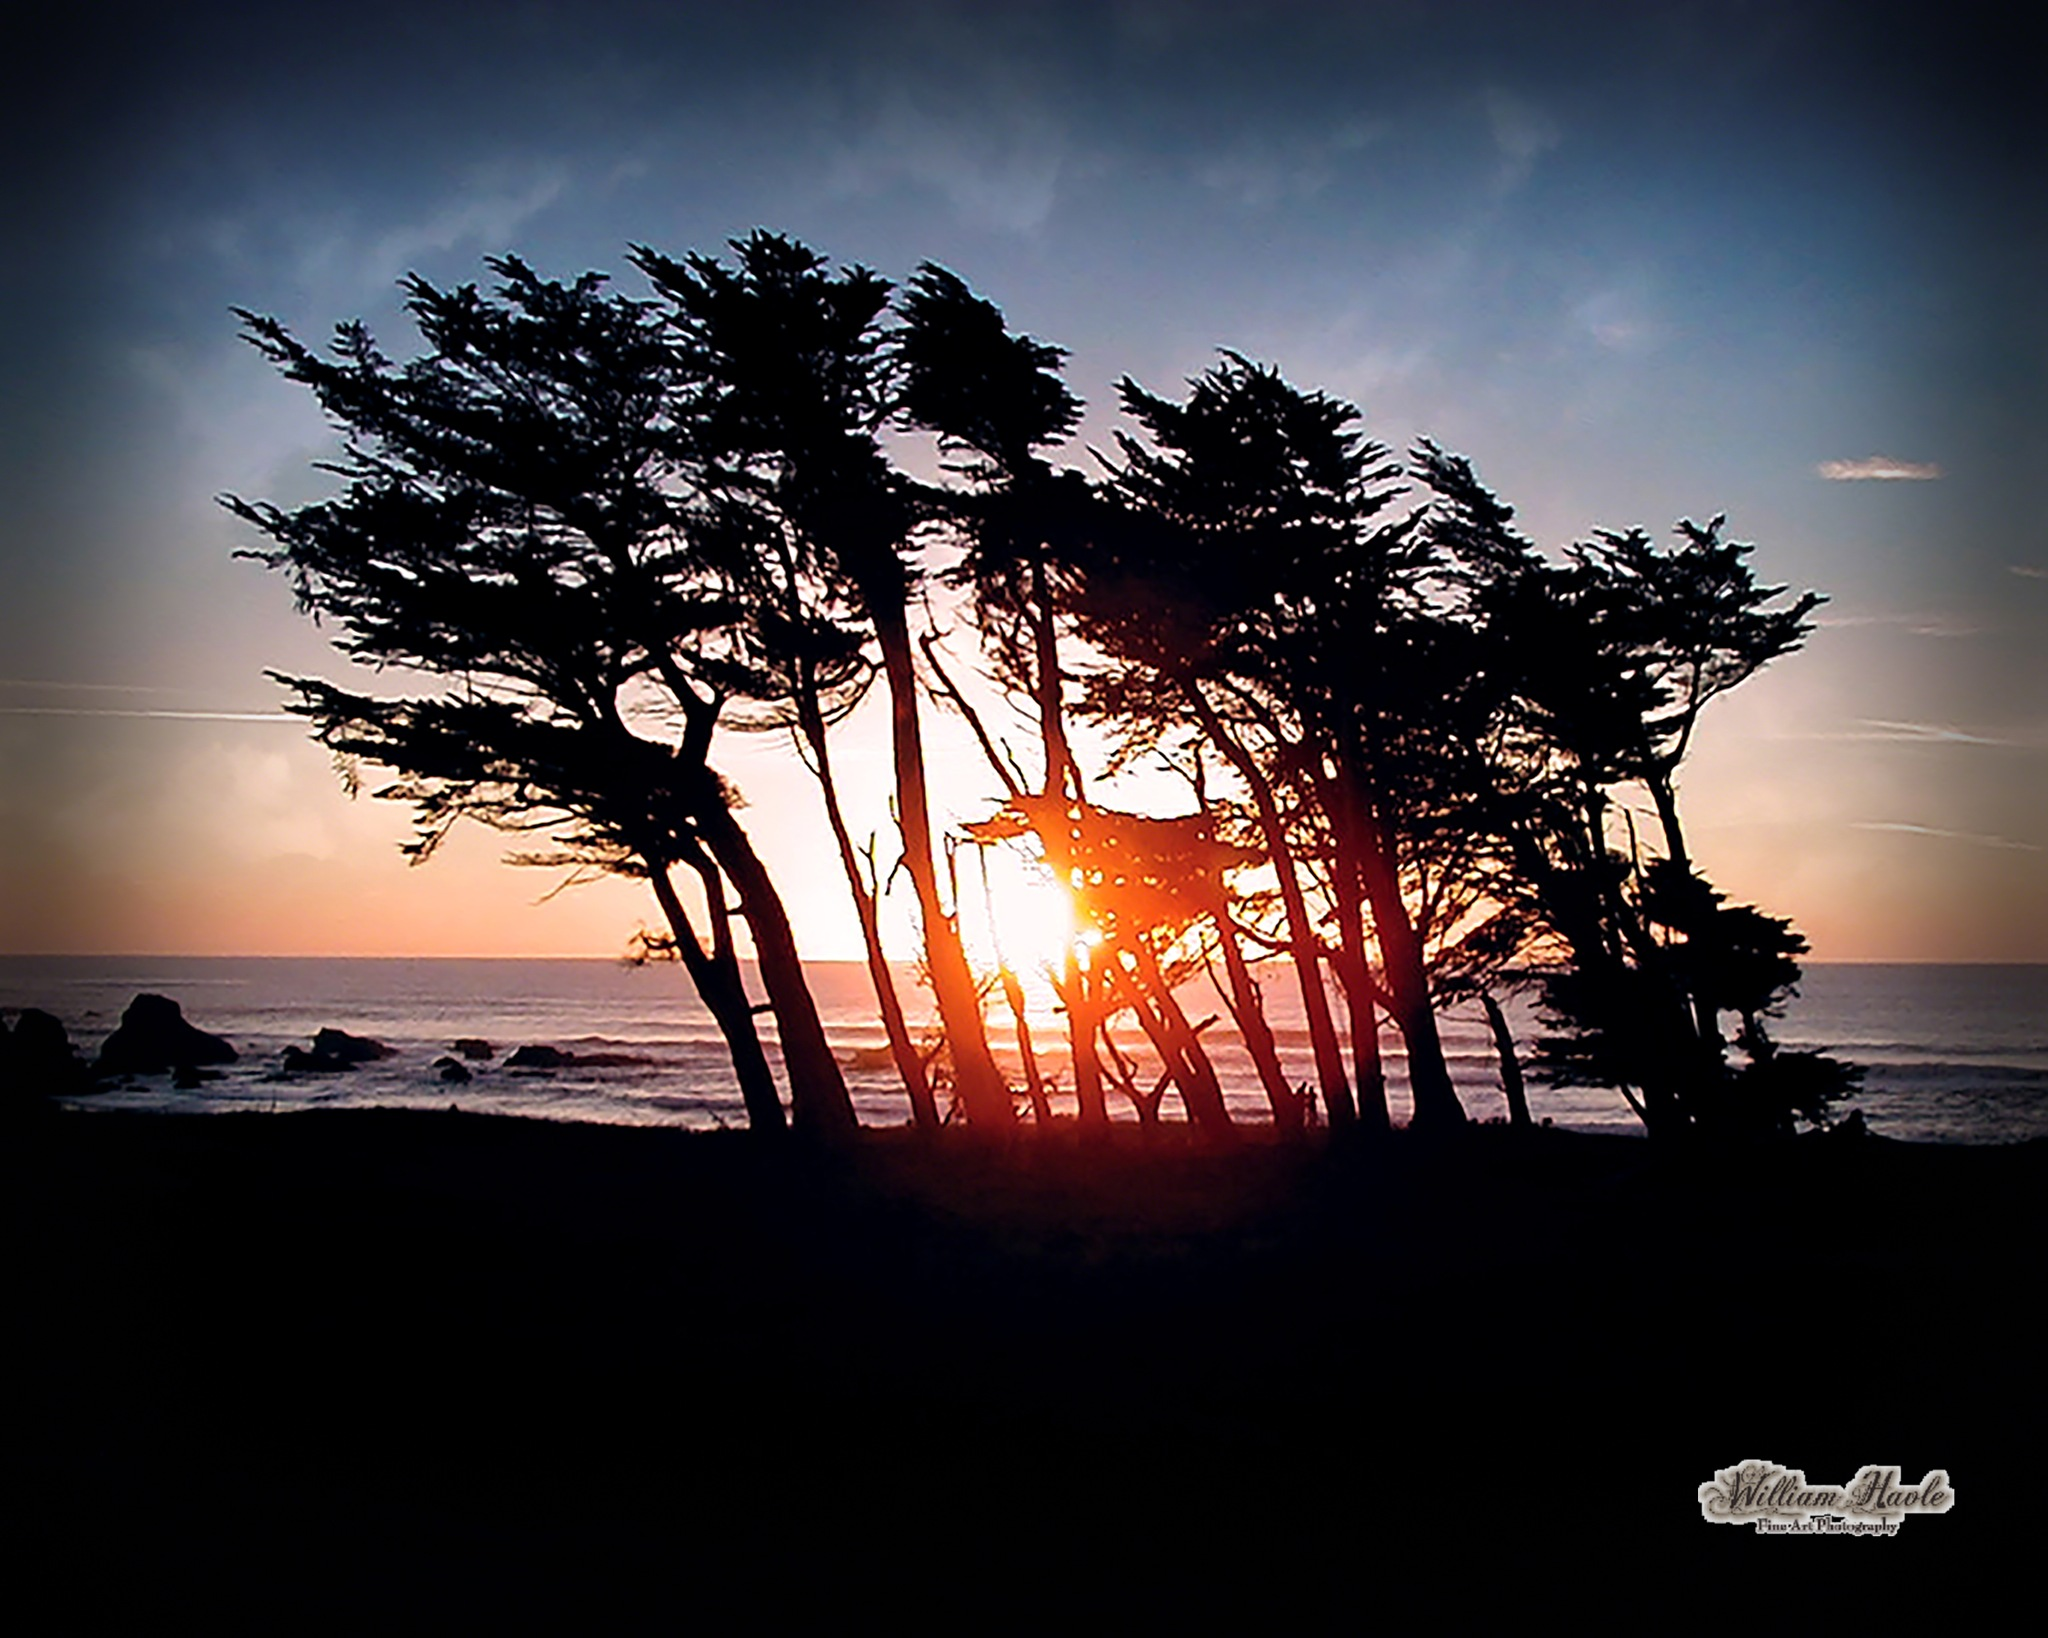 Fort Bragg Sunset in the Trees by Bill Havle